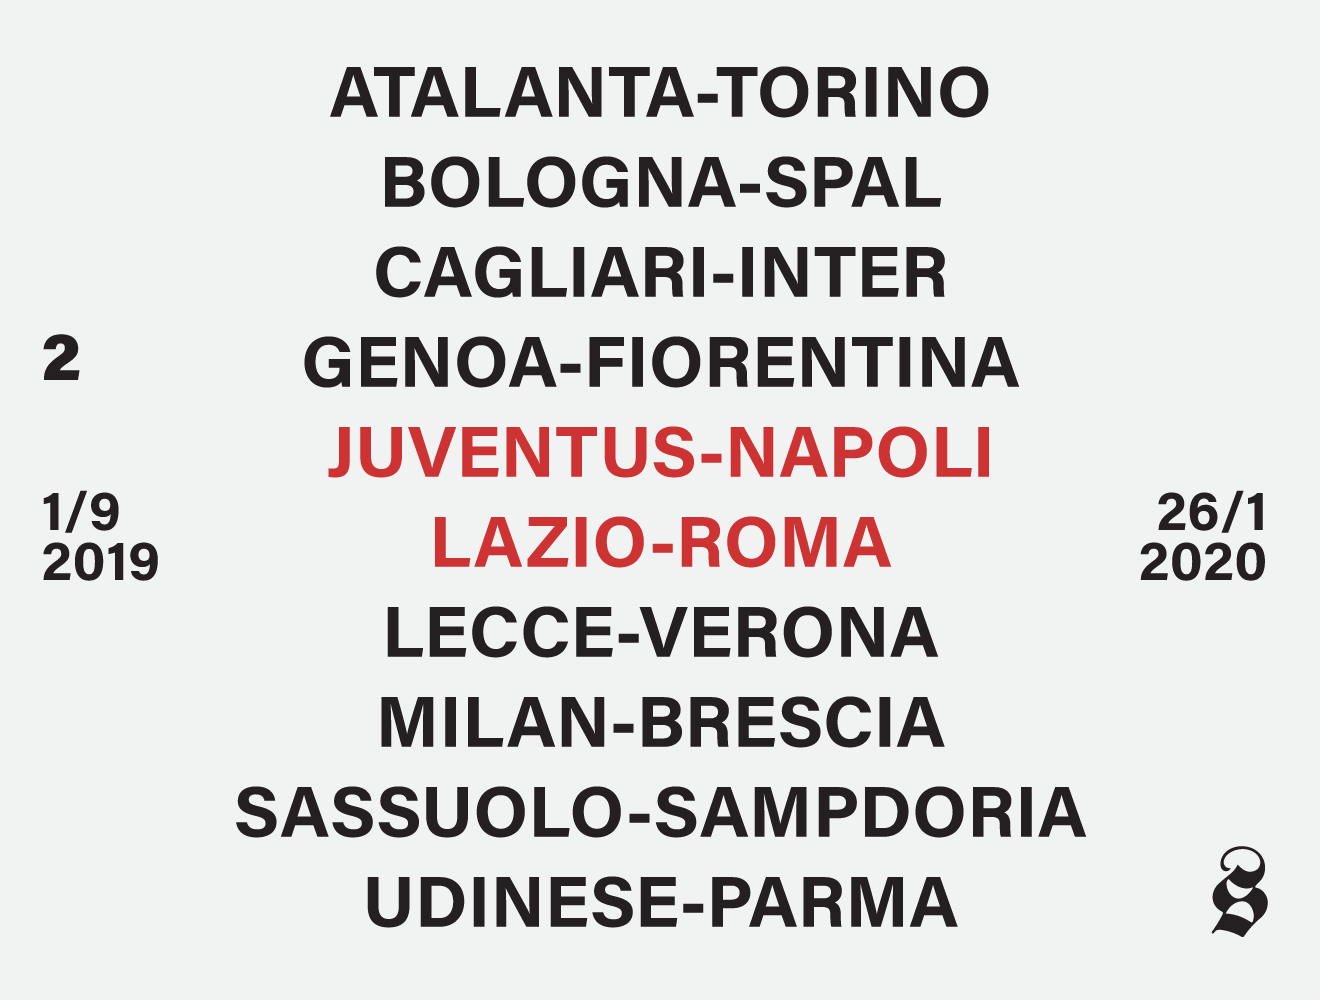 Calendario Partite Calcio Serie A.Serie A Il Calendario Del Campionato 2019 20 Il Post